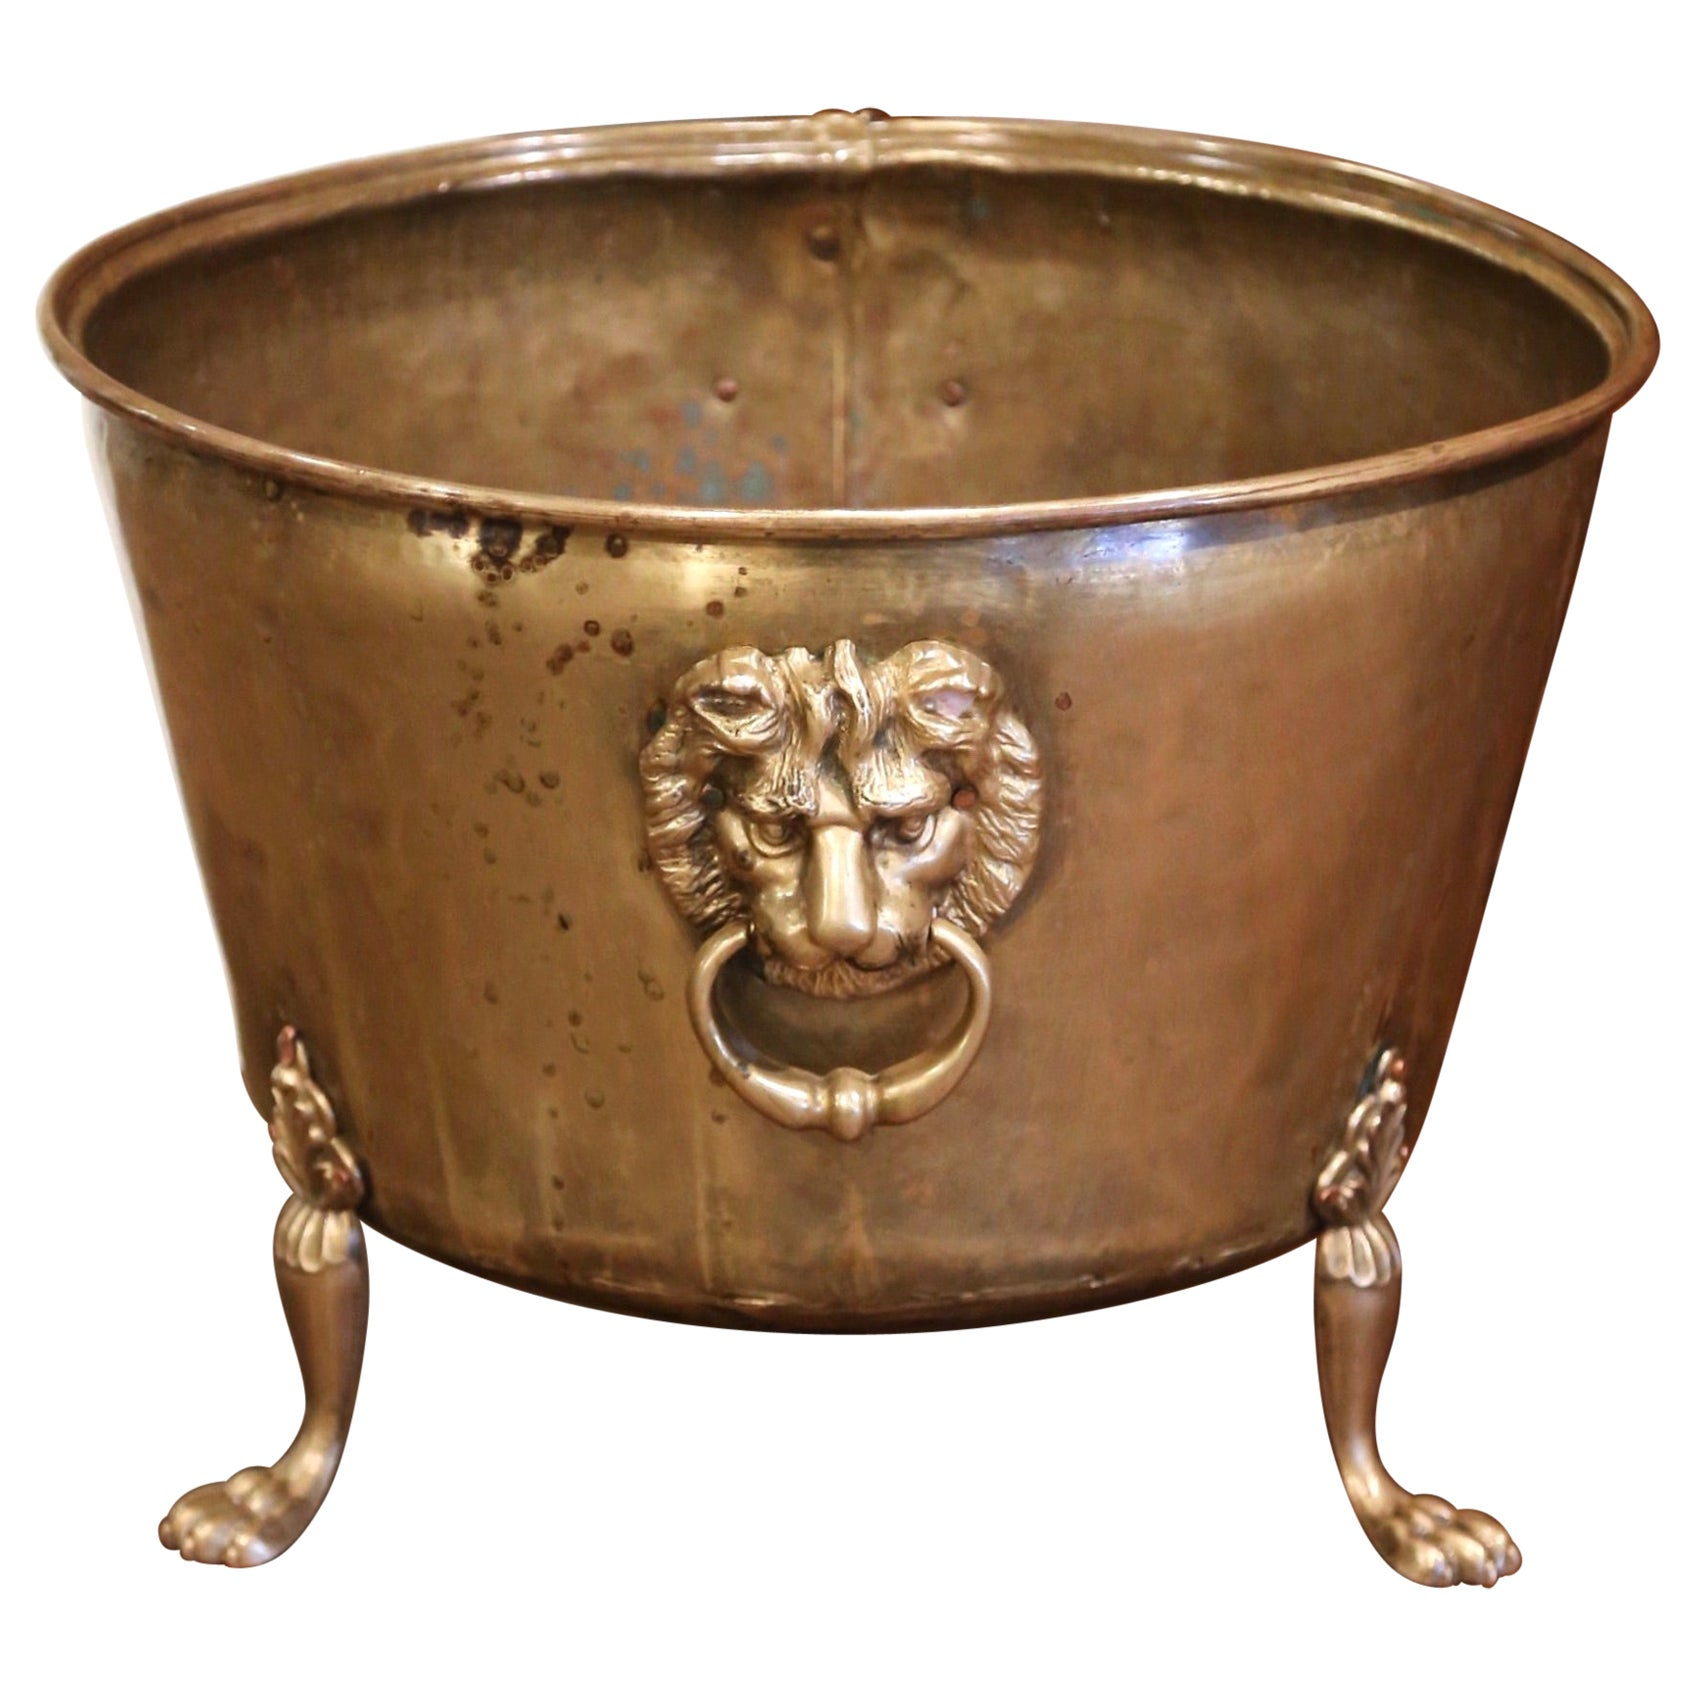 19th Century French Brass Cache-Pot Planter with Lion Head Handles